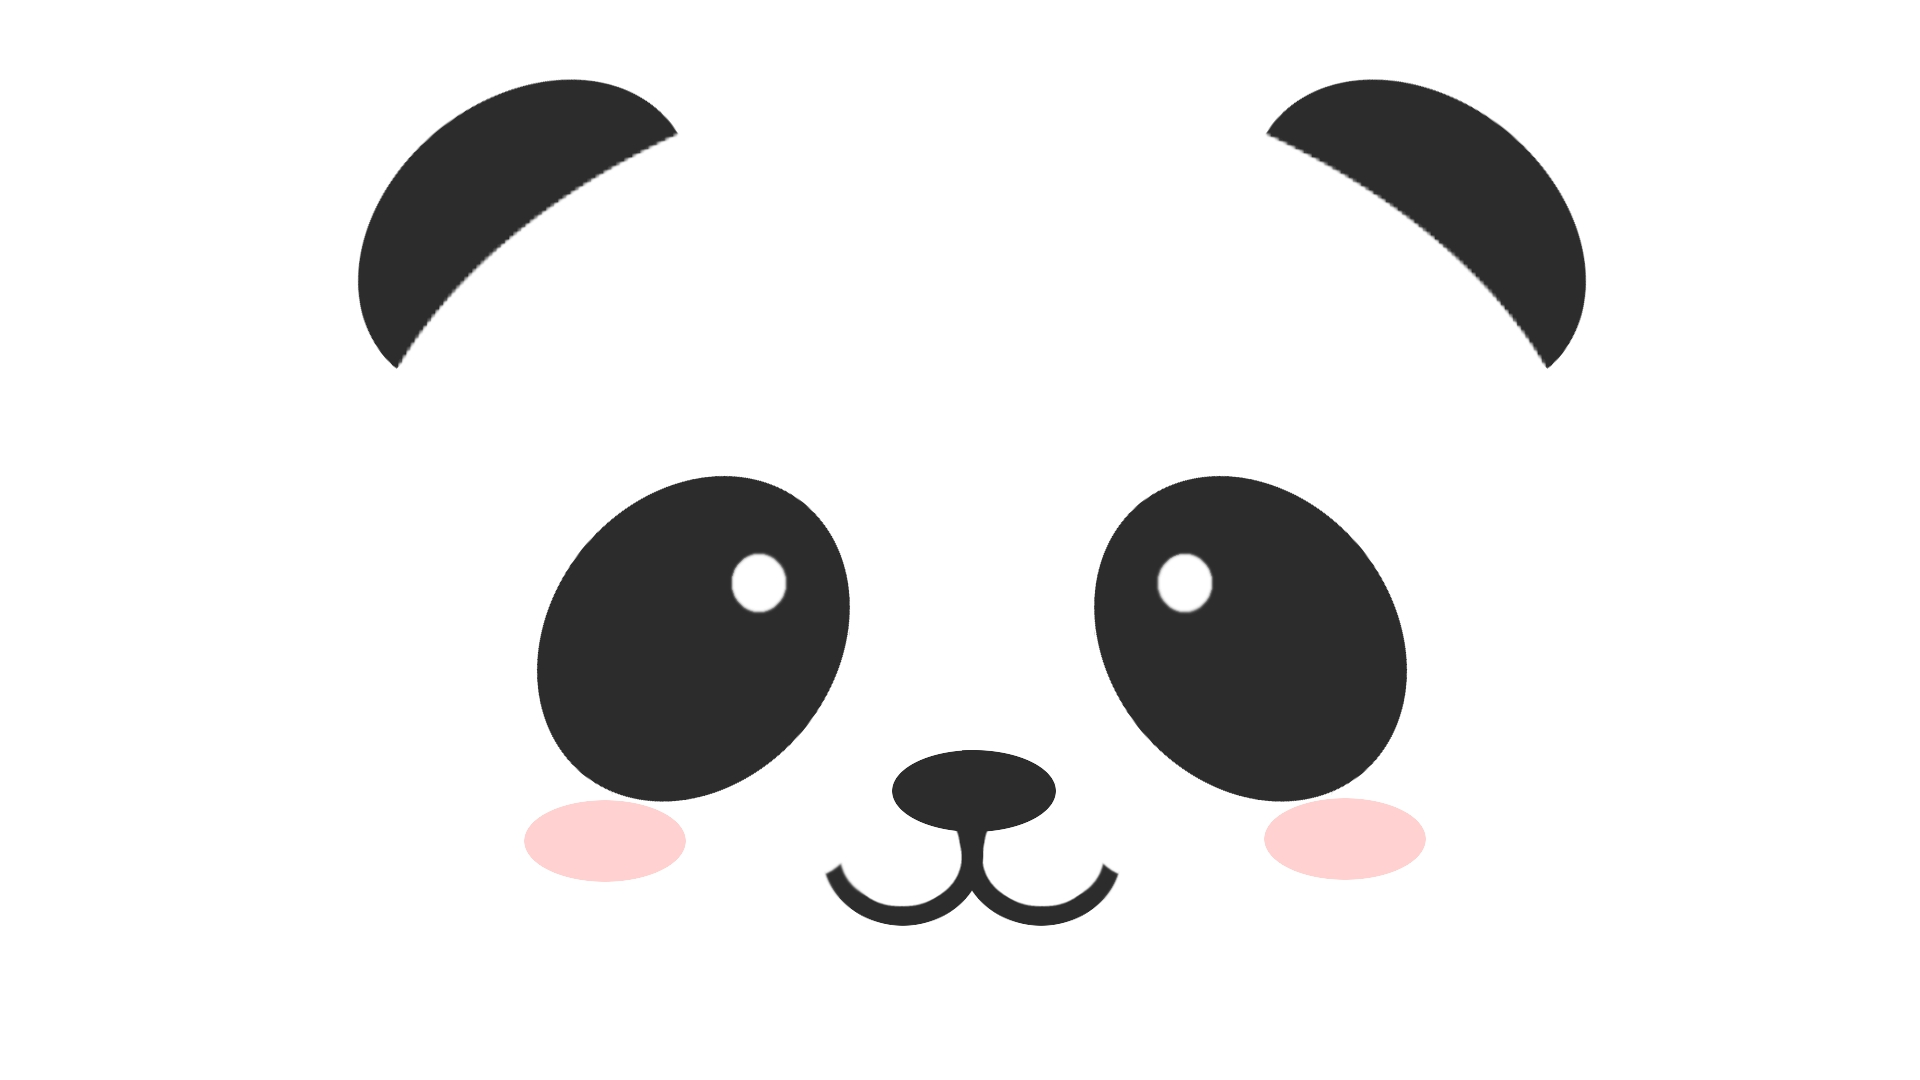 BsnSCB: Nice Cute Panda Backgrounds, Shawna Fullerton